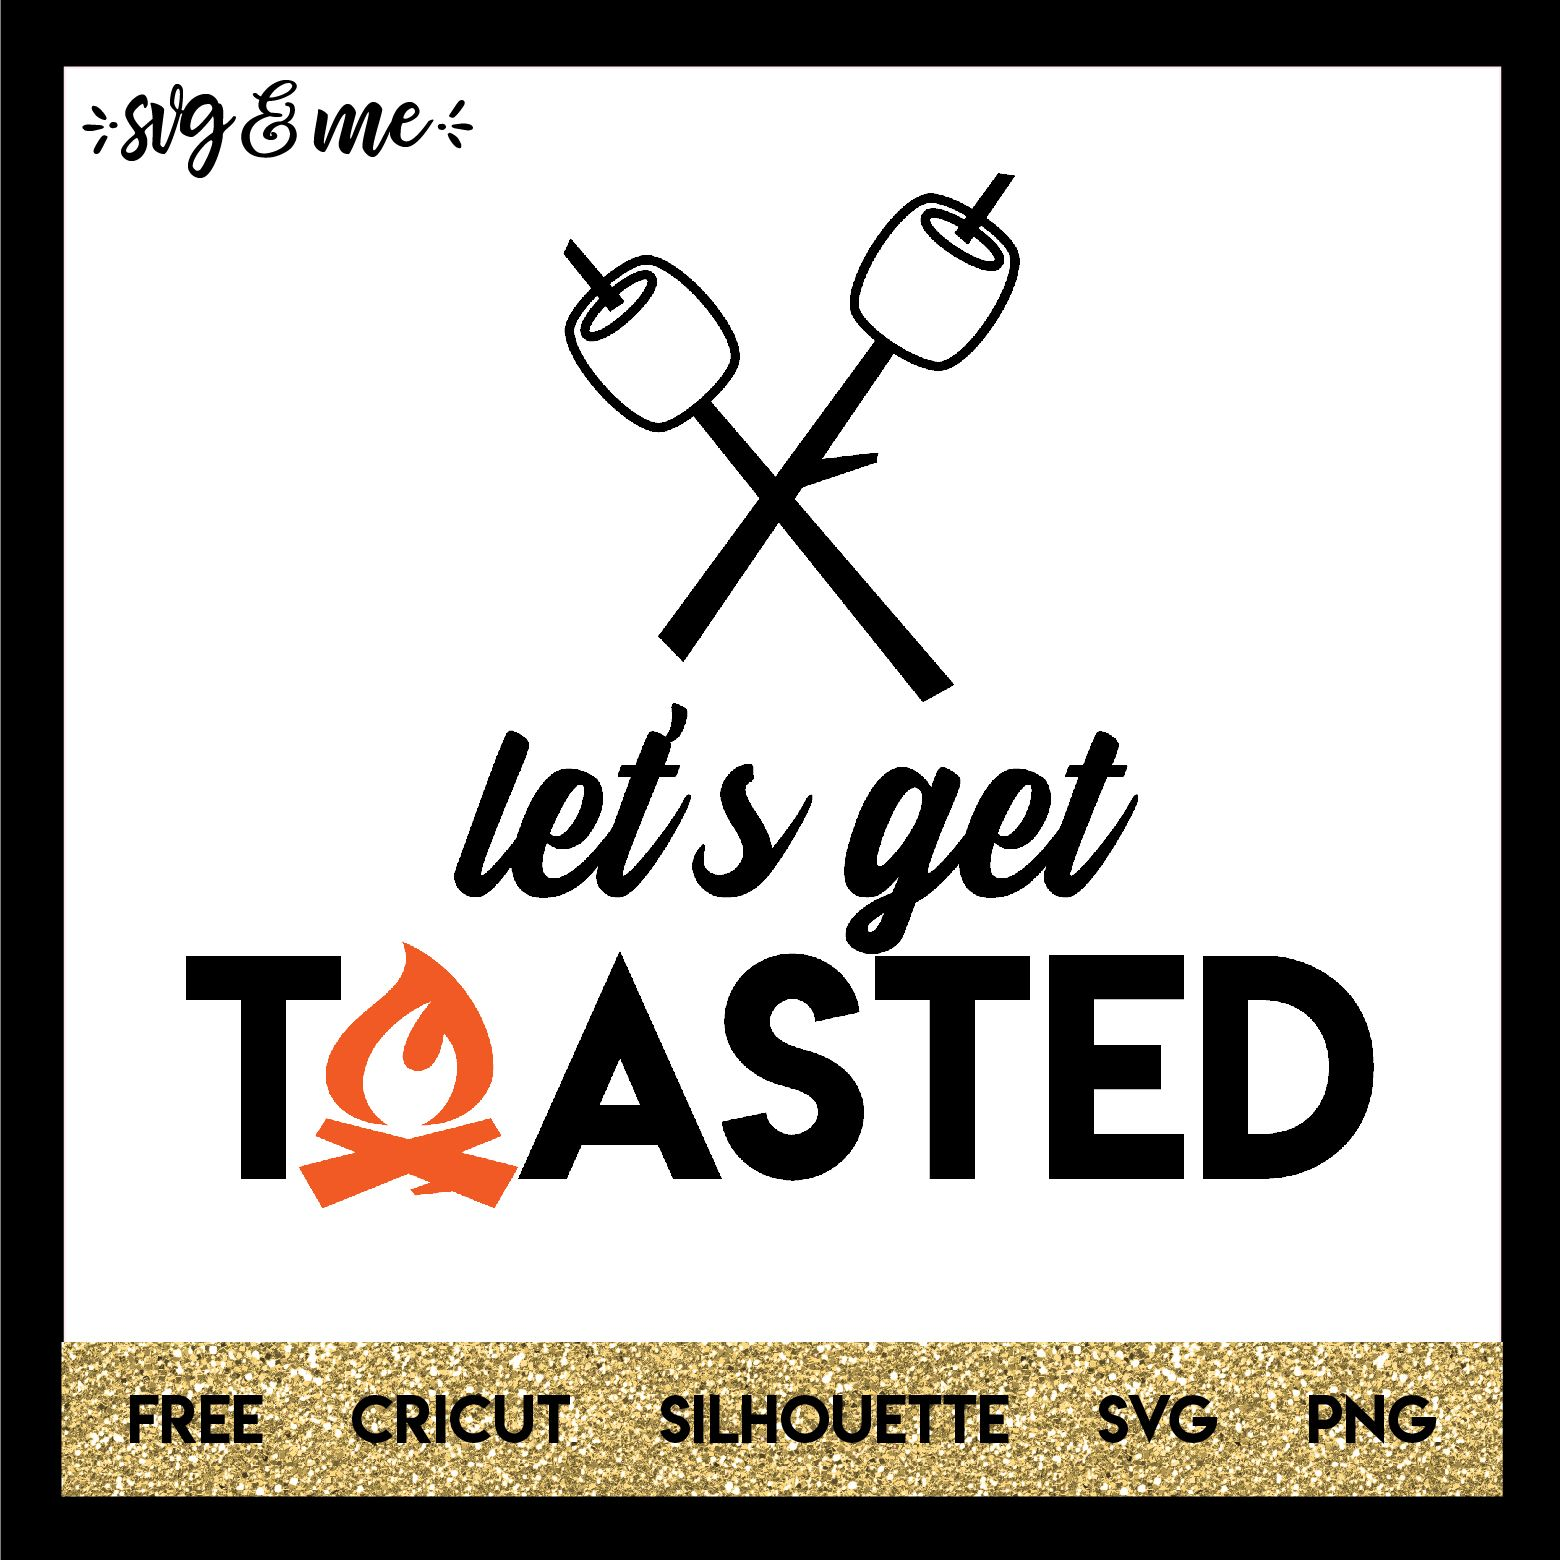 Let's Get Toasted S'mores Cricut, Svg files for cricut